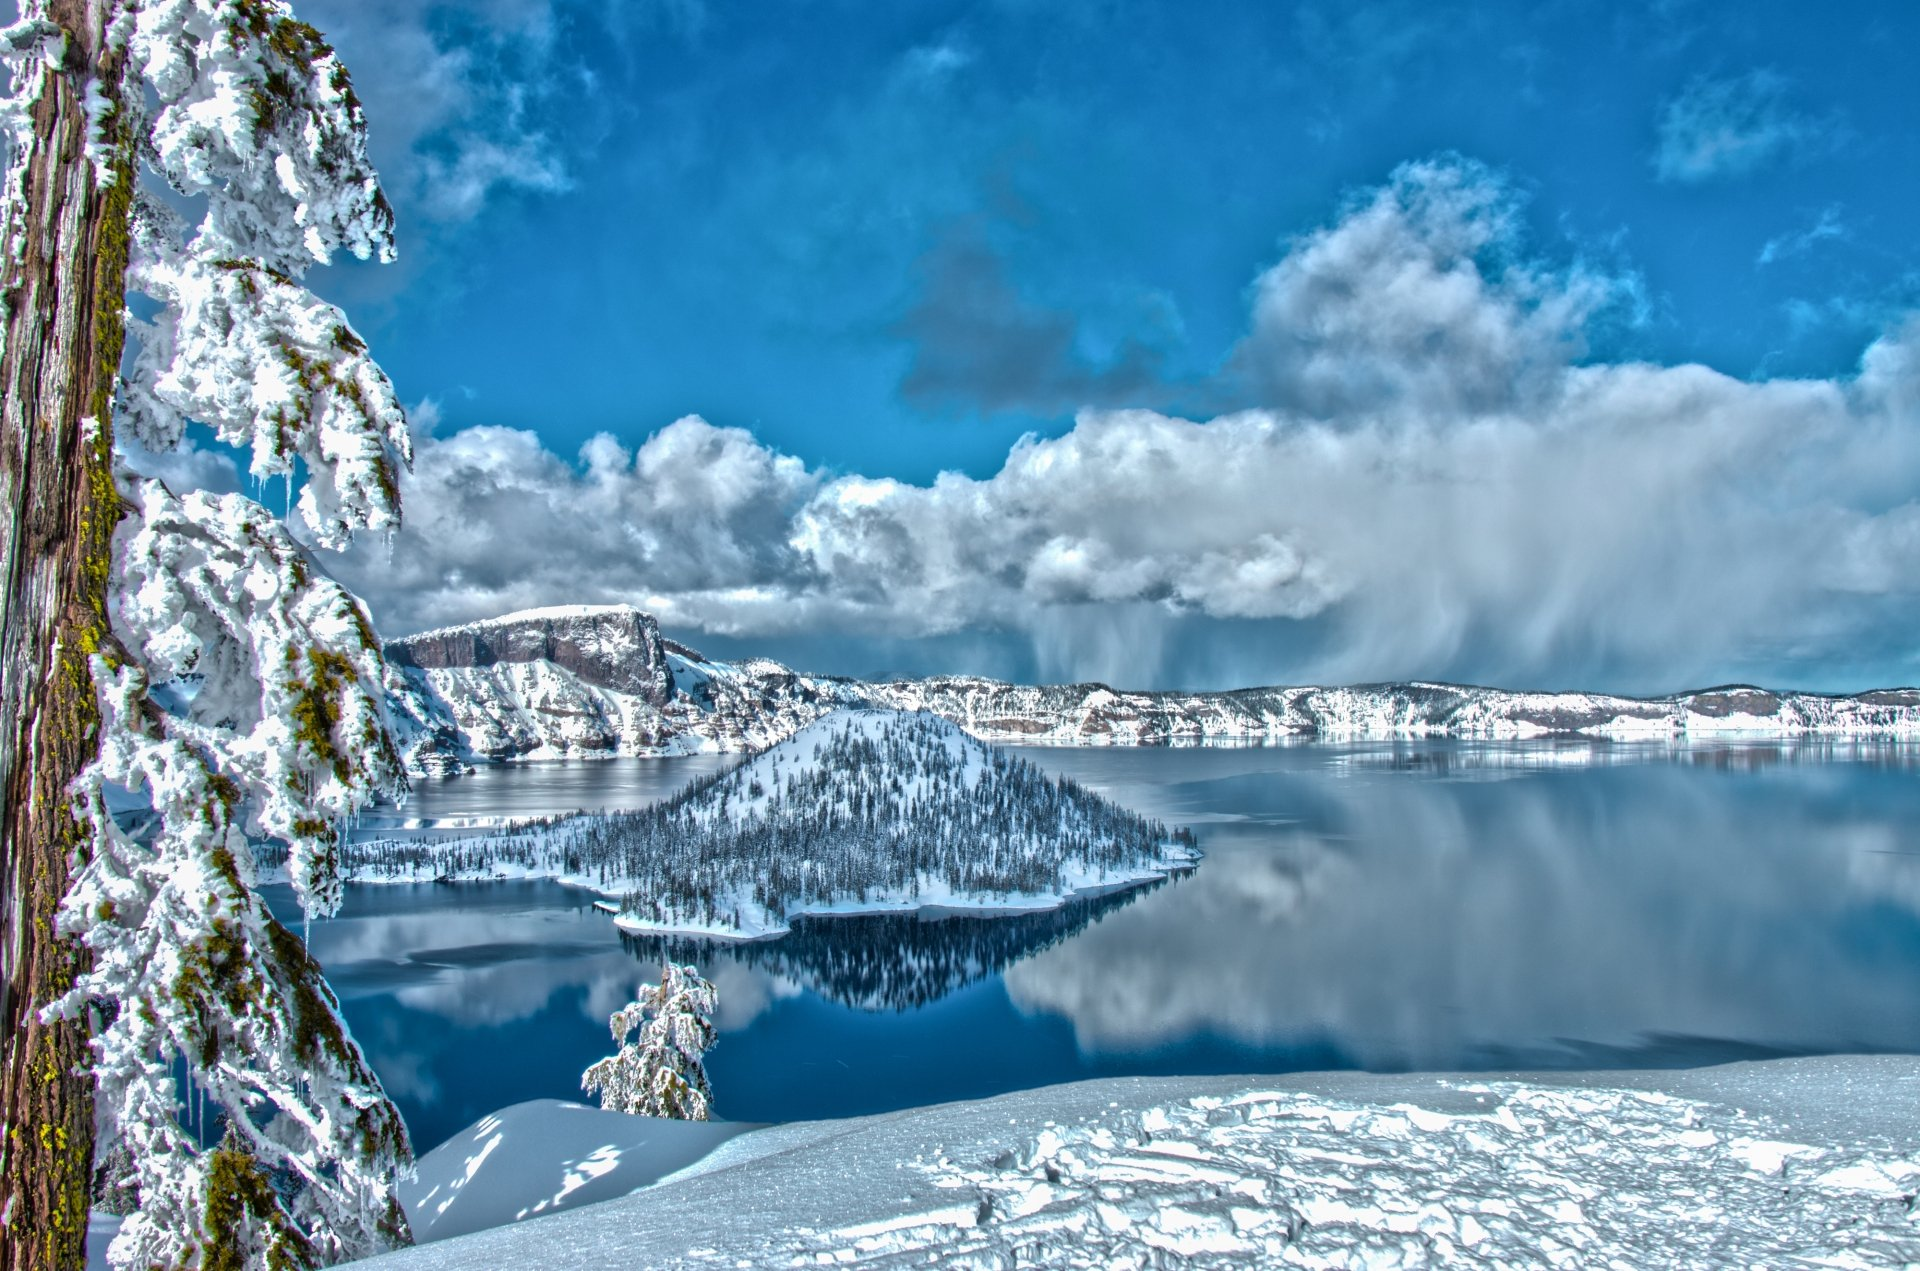 A snowy view of Crater Lake.